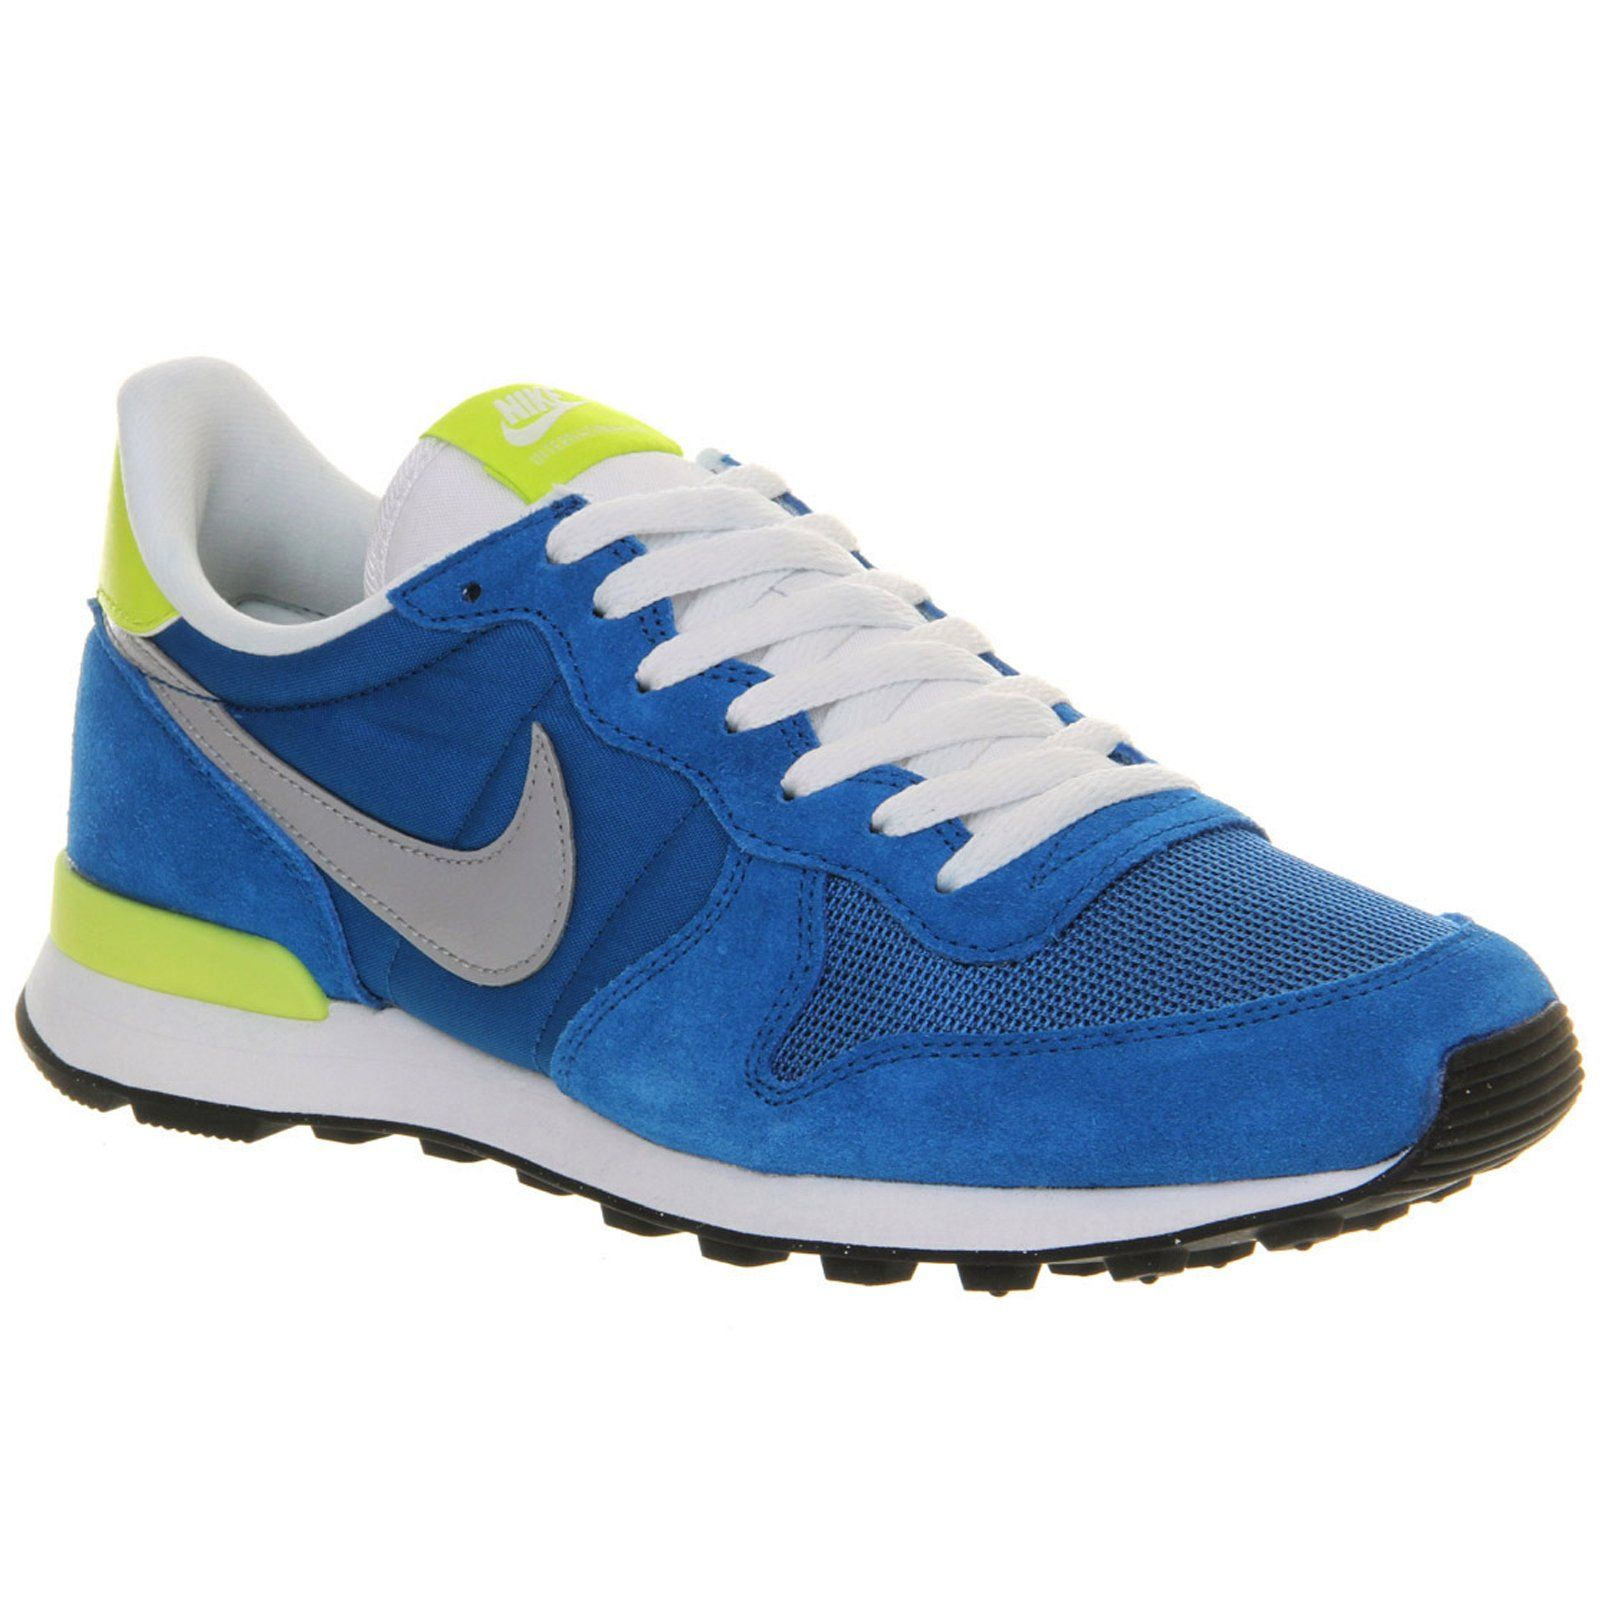 sports shoes 079a1 853e1 basket mode nike homme